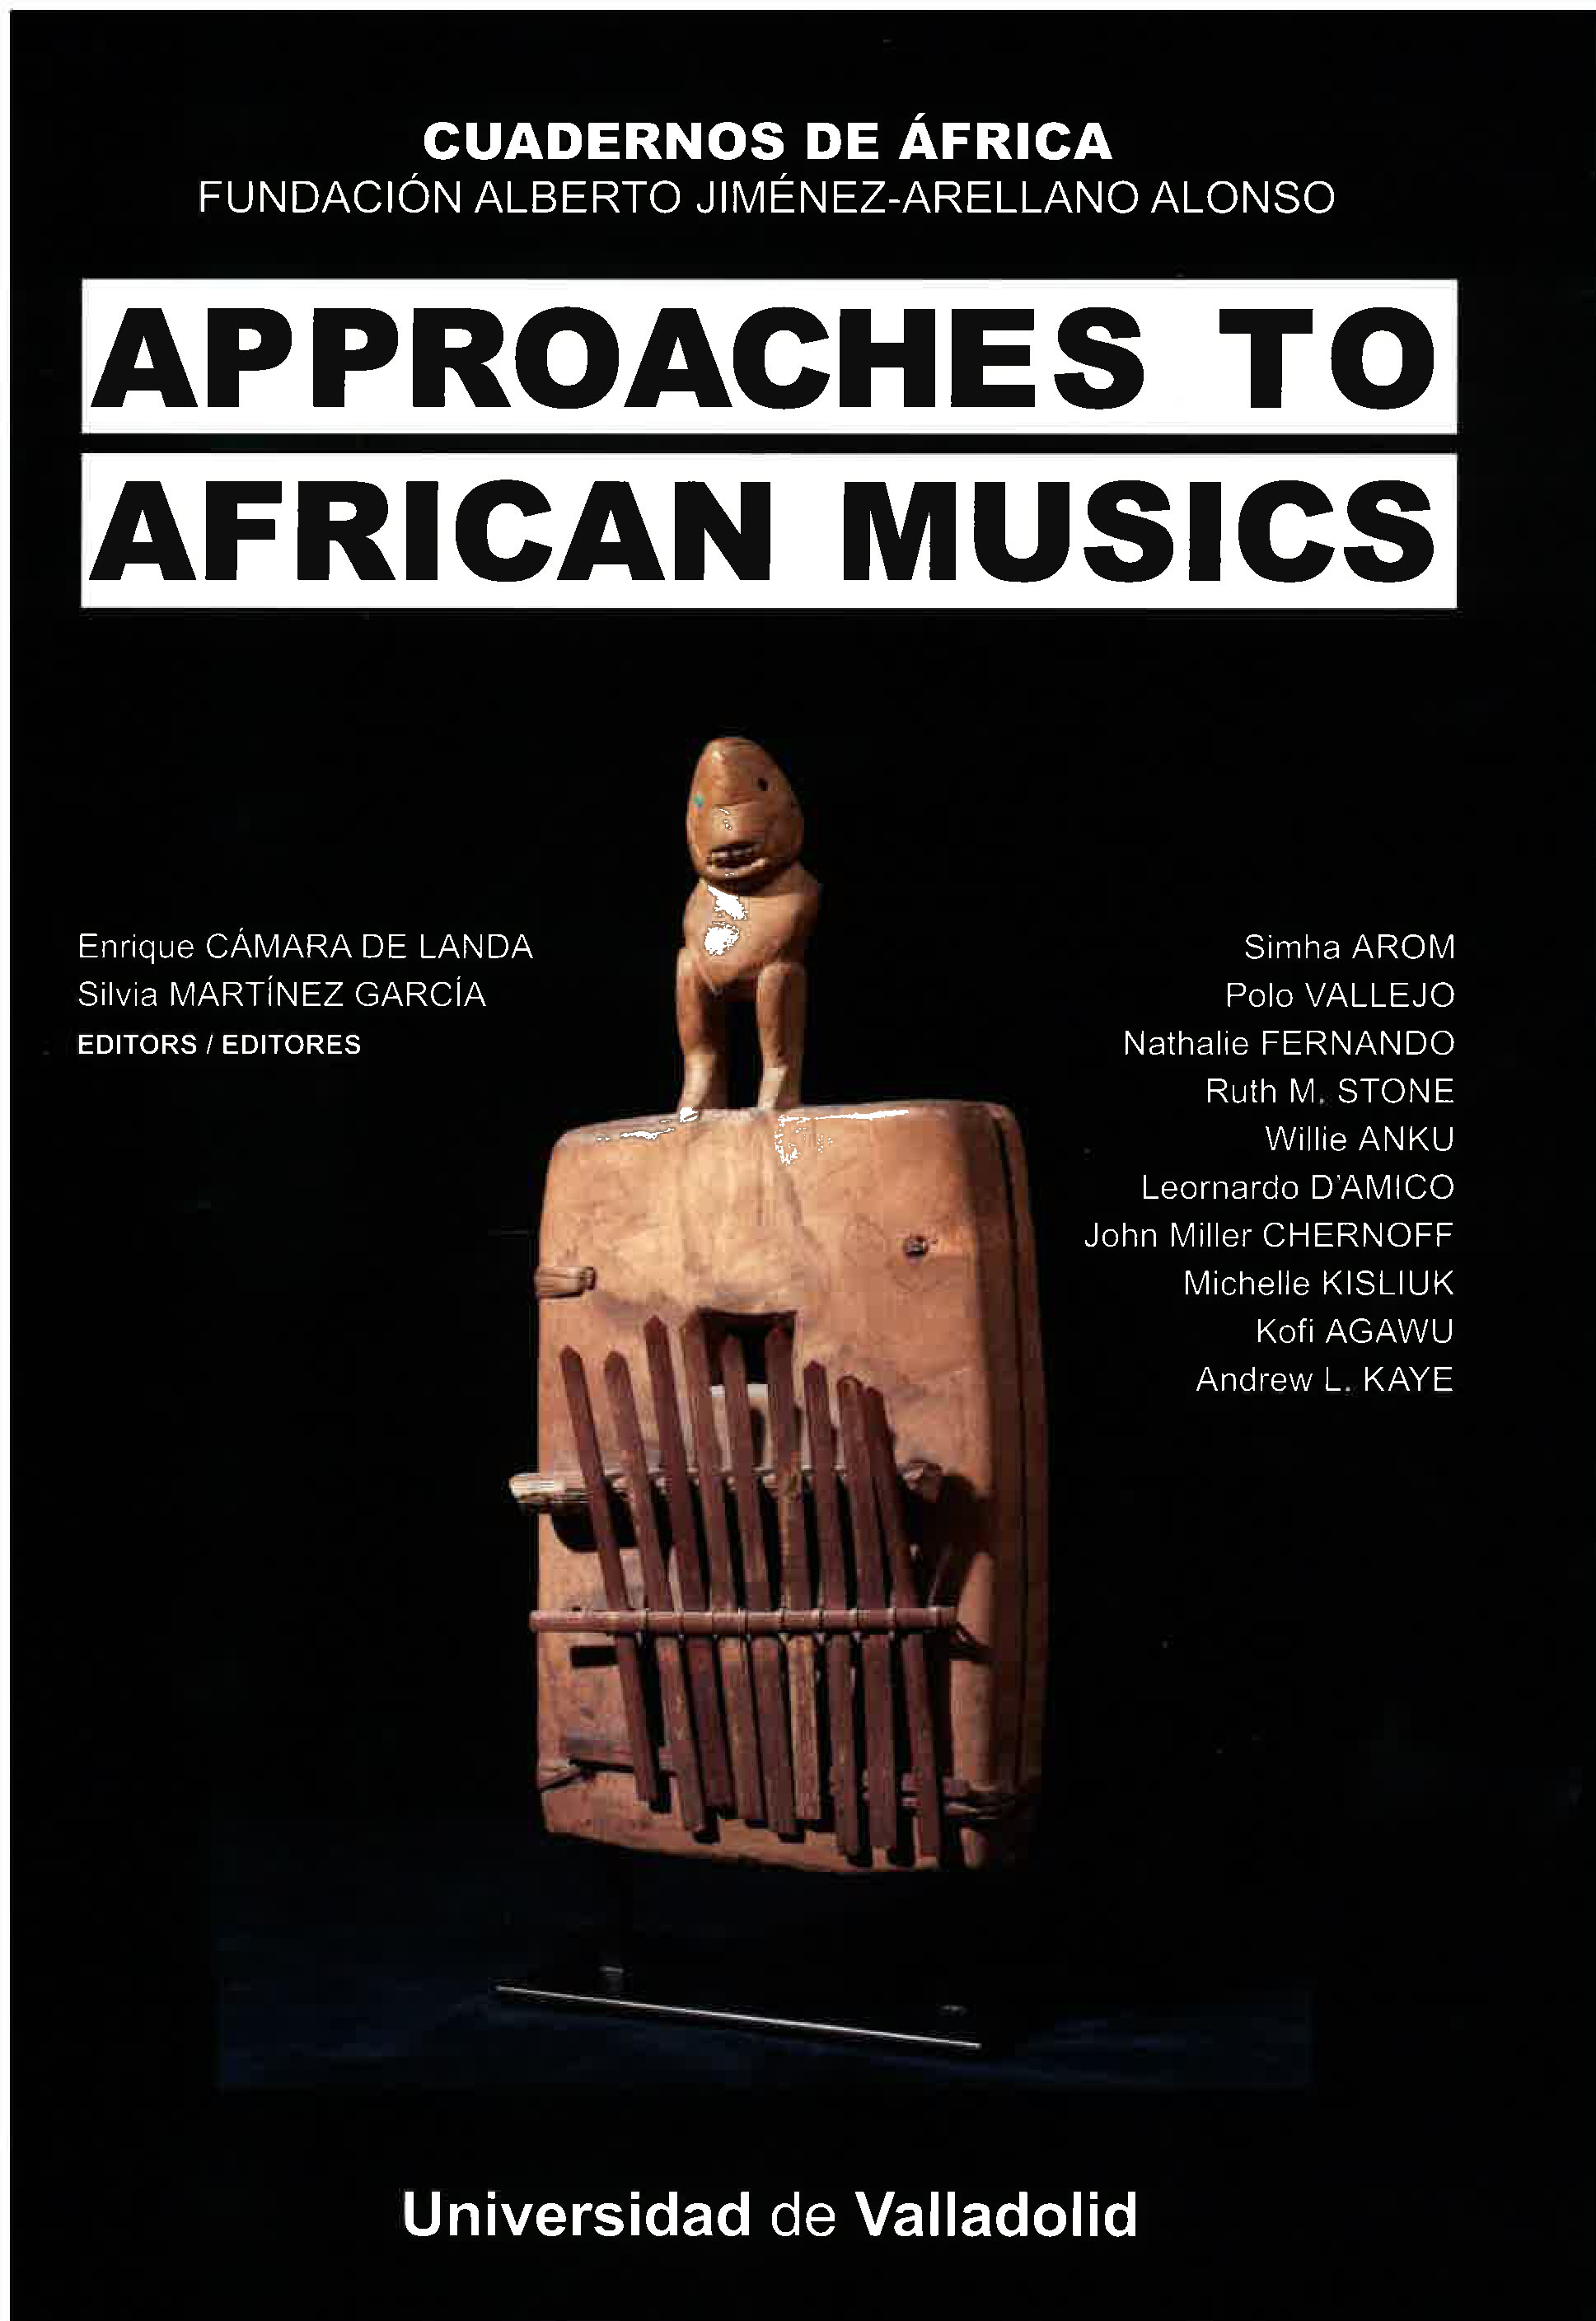 Approaches to African Music